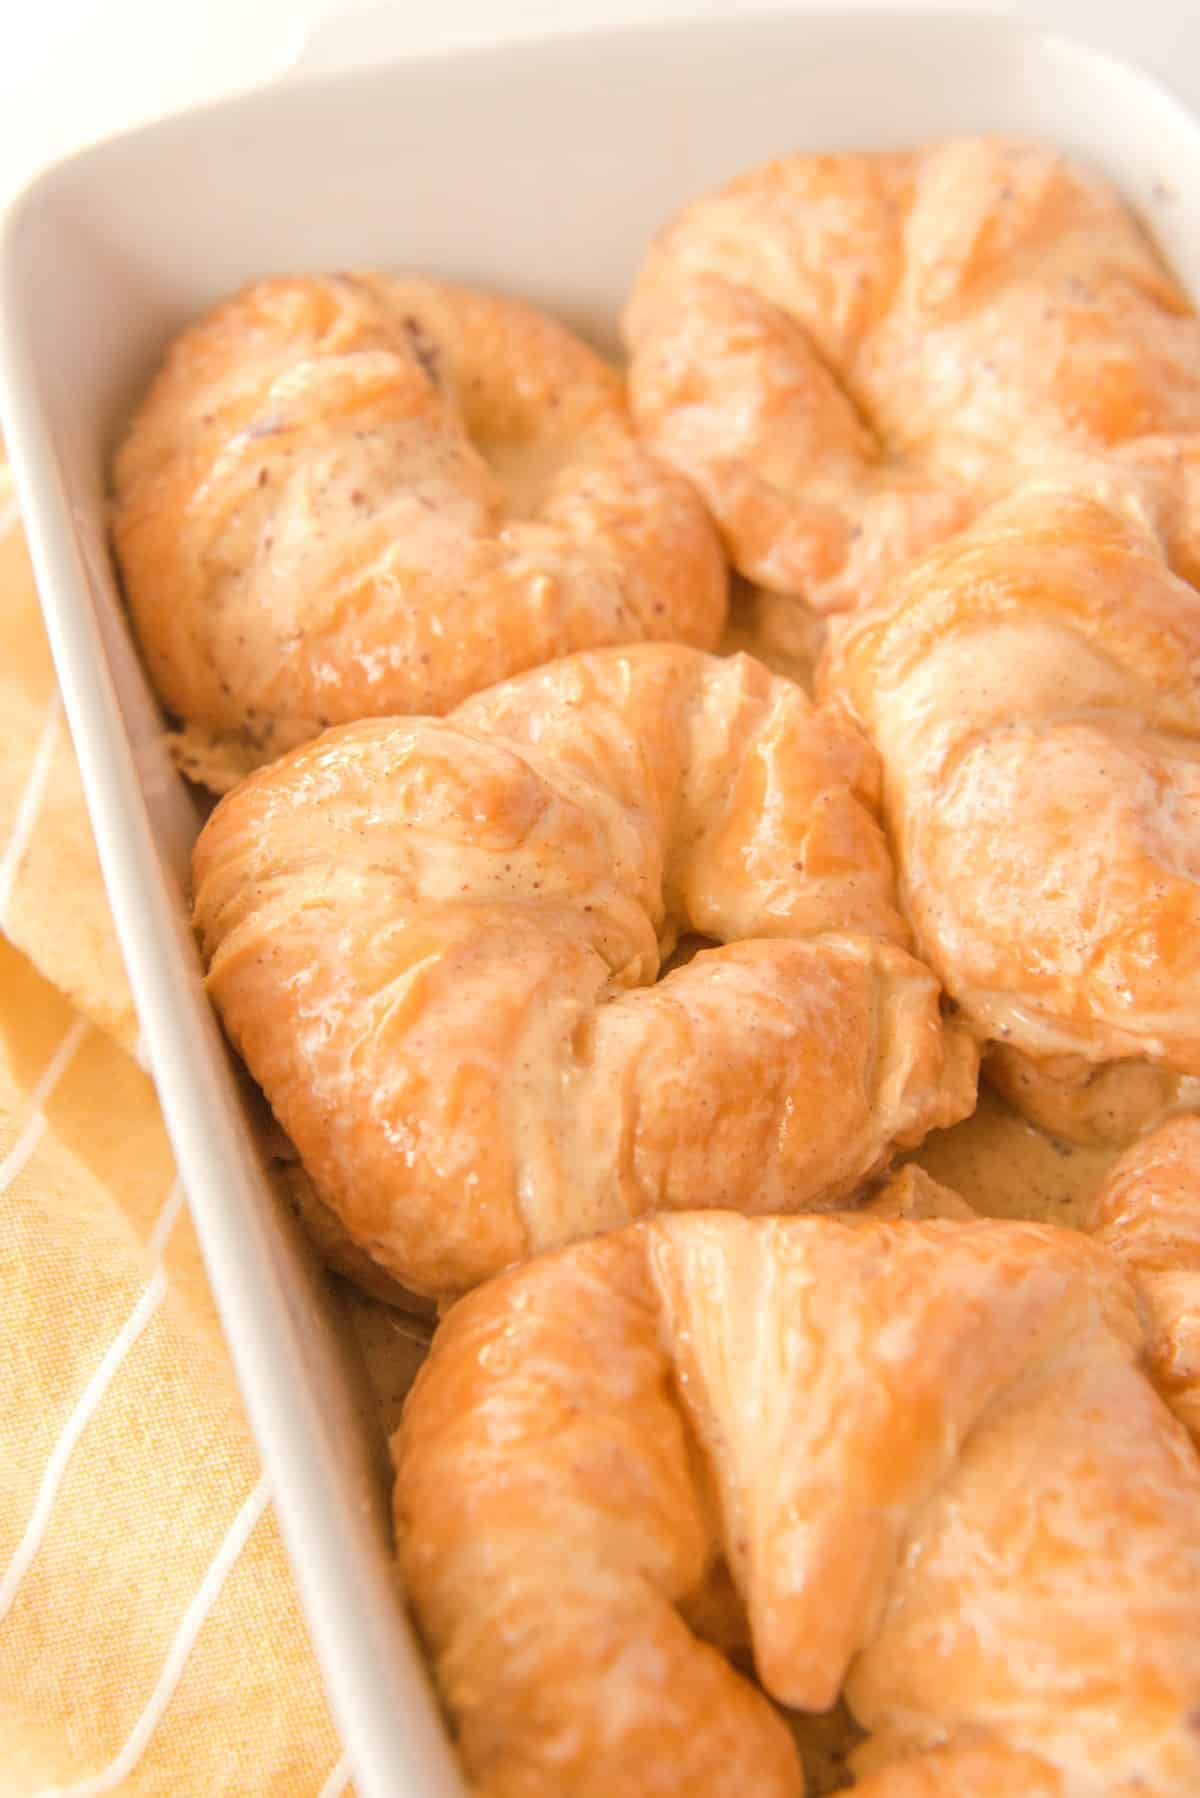 Croissants in a baking dish, soaked in custard